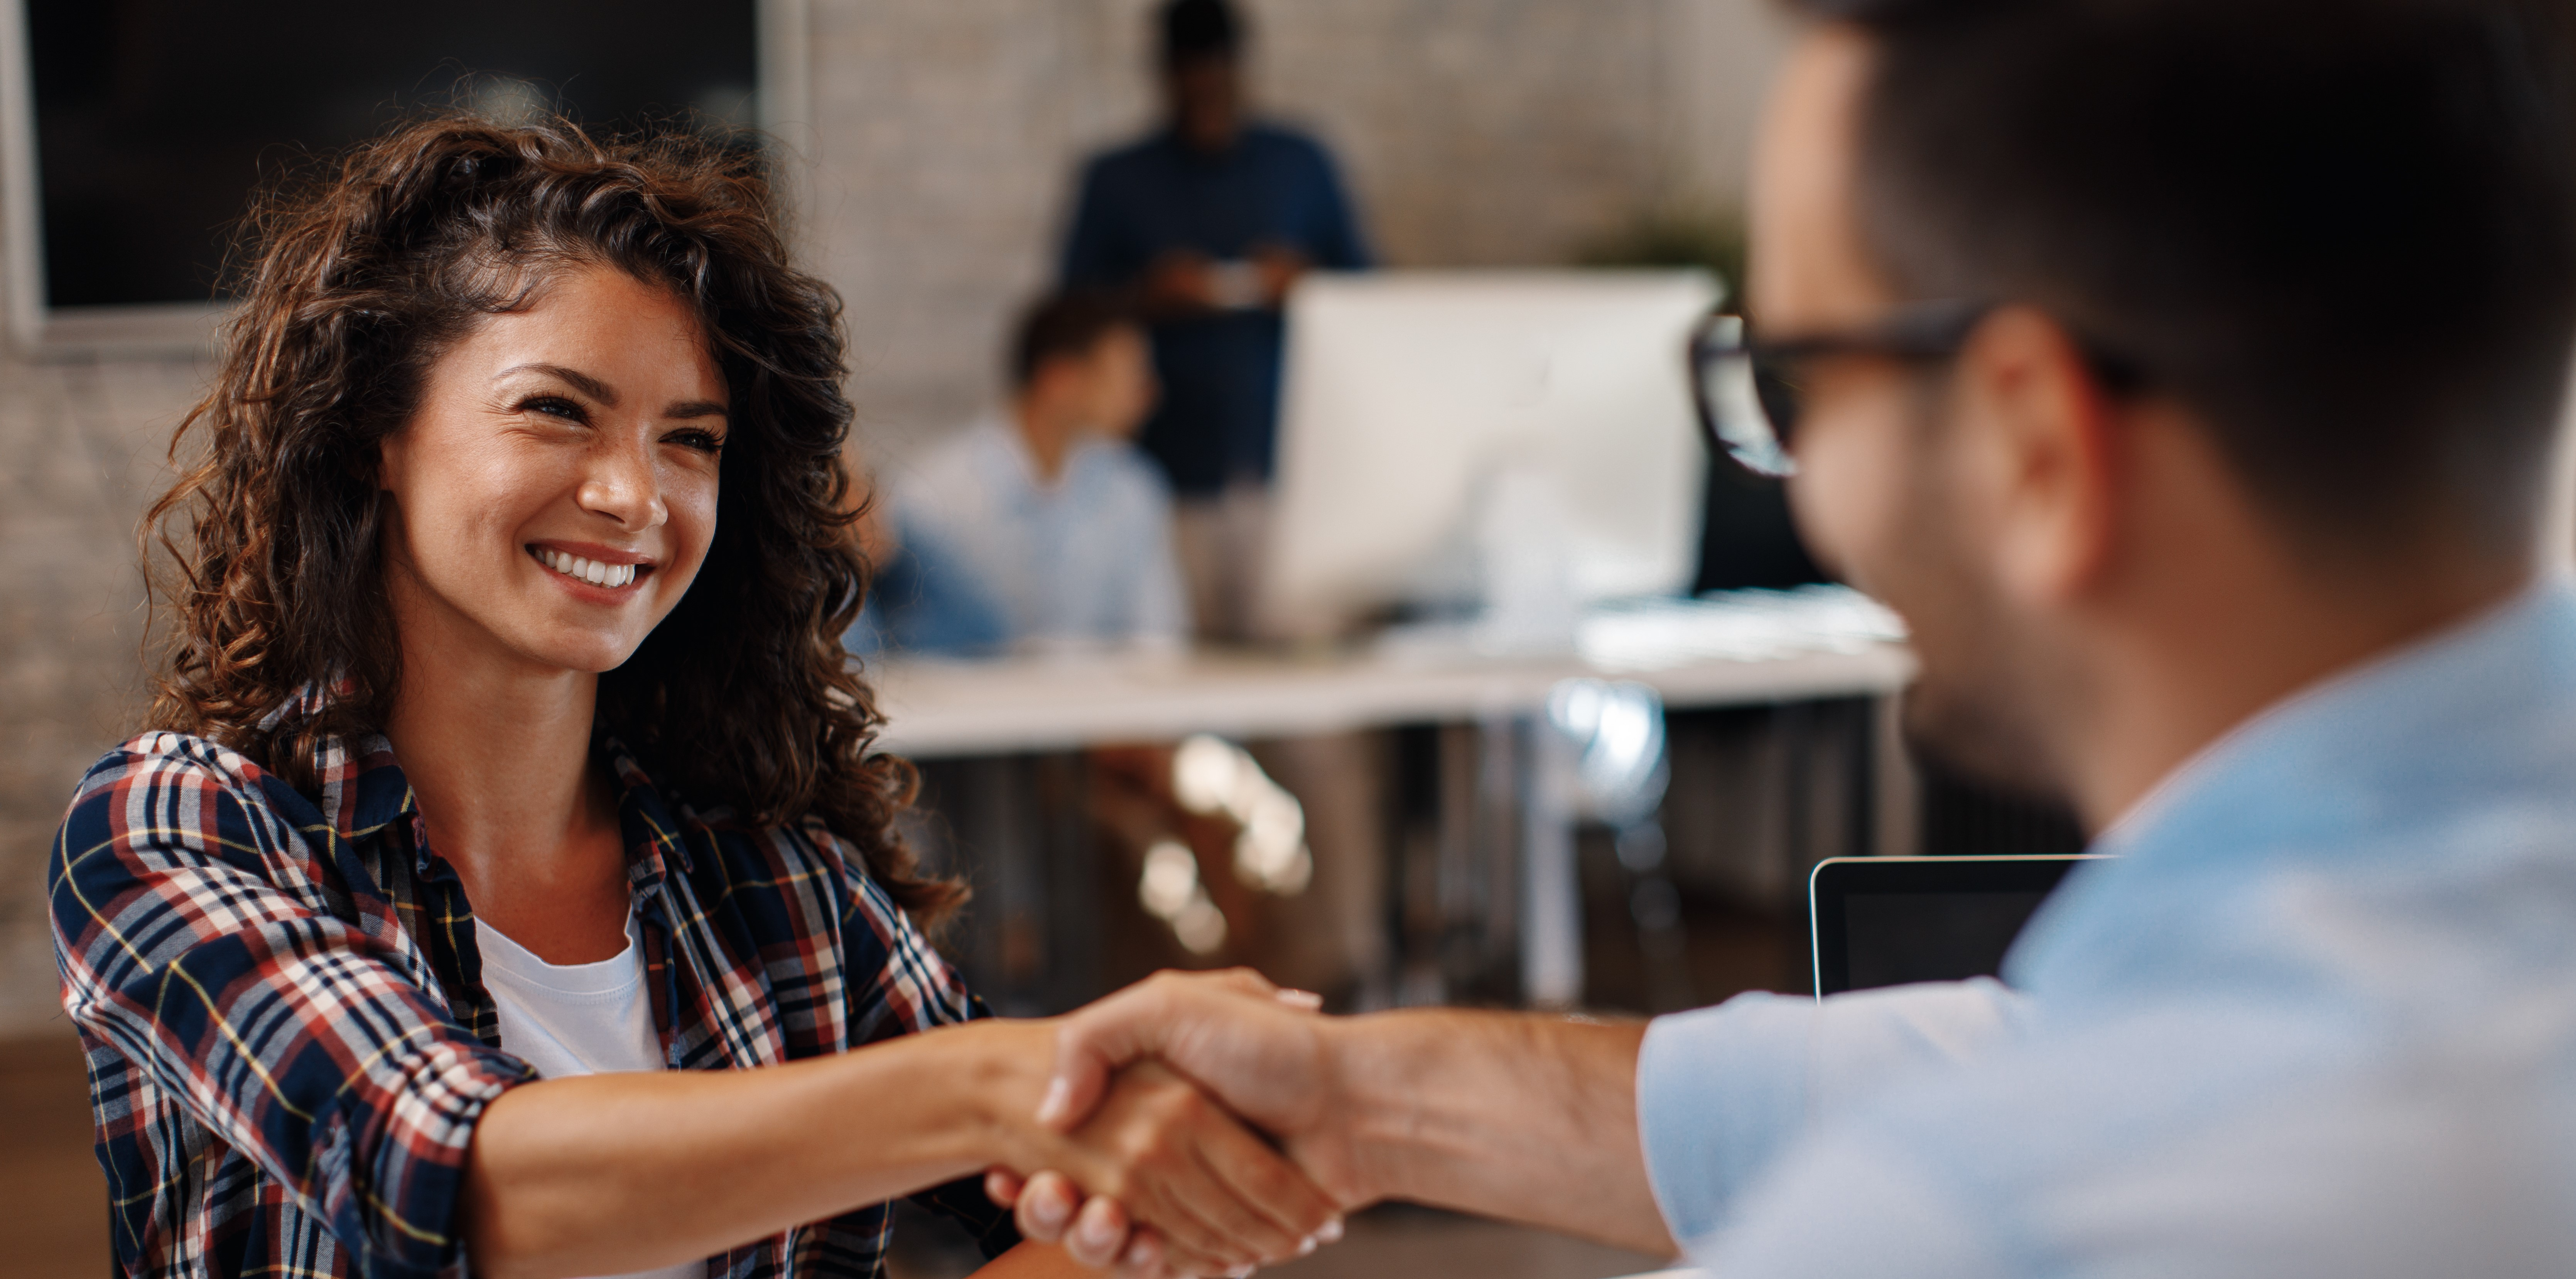 Is Your Interview Legal? Some Questions You Should Never Ask | Lorman  Education Services